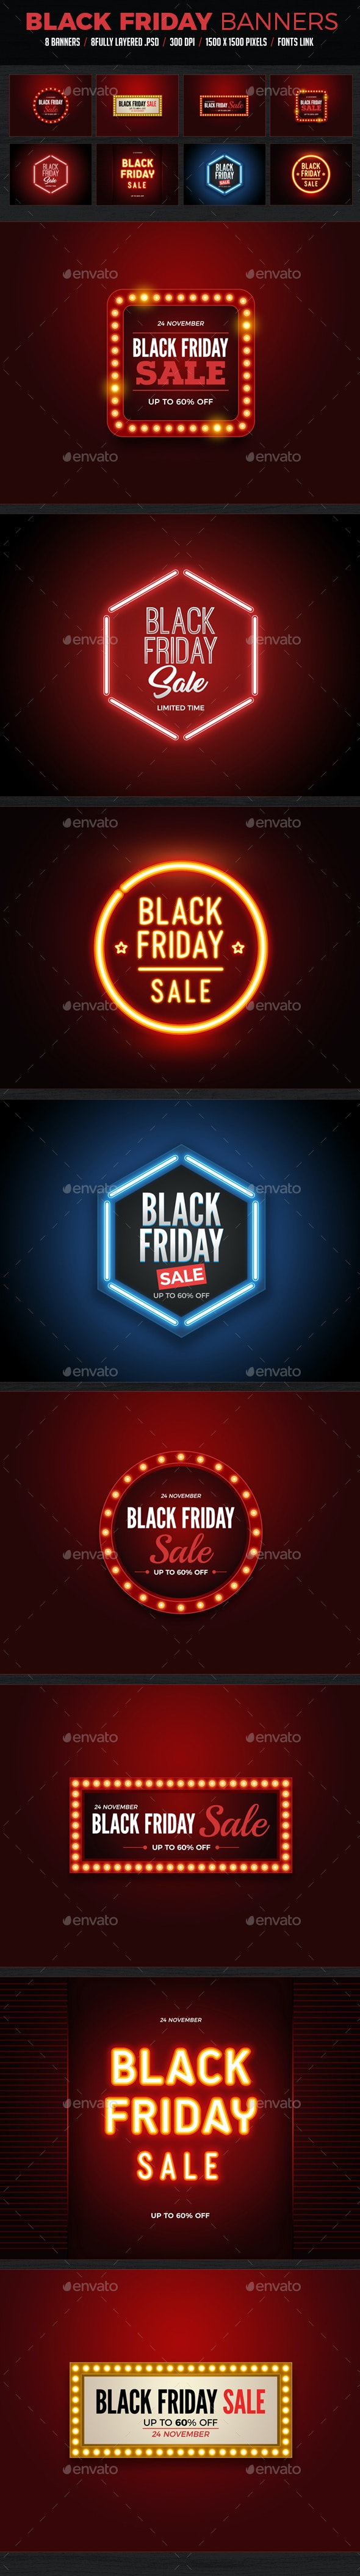 Black Friday Sale Banners - Banners & Ads Web Elements